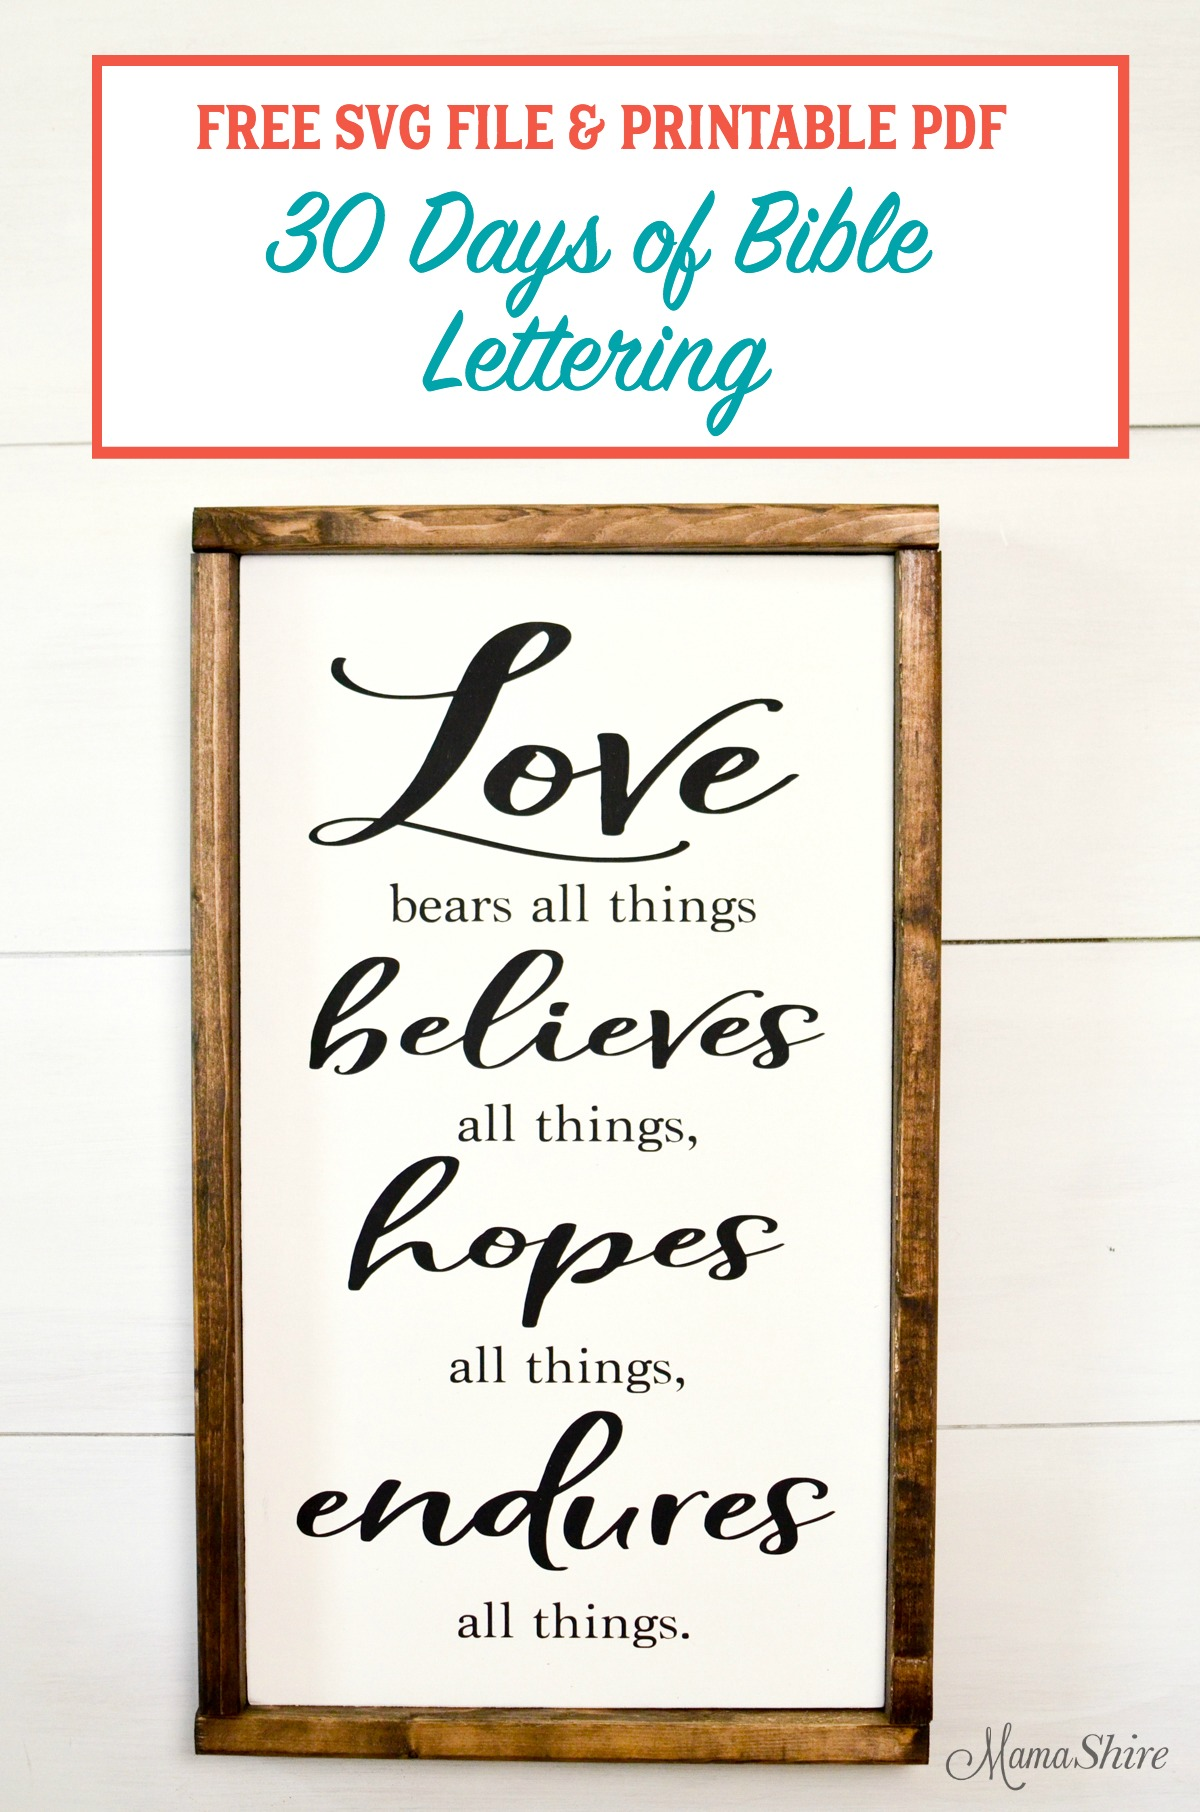 photograph relating to Free Printable Bible Verses Handwriting named Totally free Bible Verse SVG Document Printable #2 - MamaShire